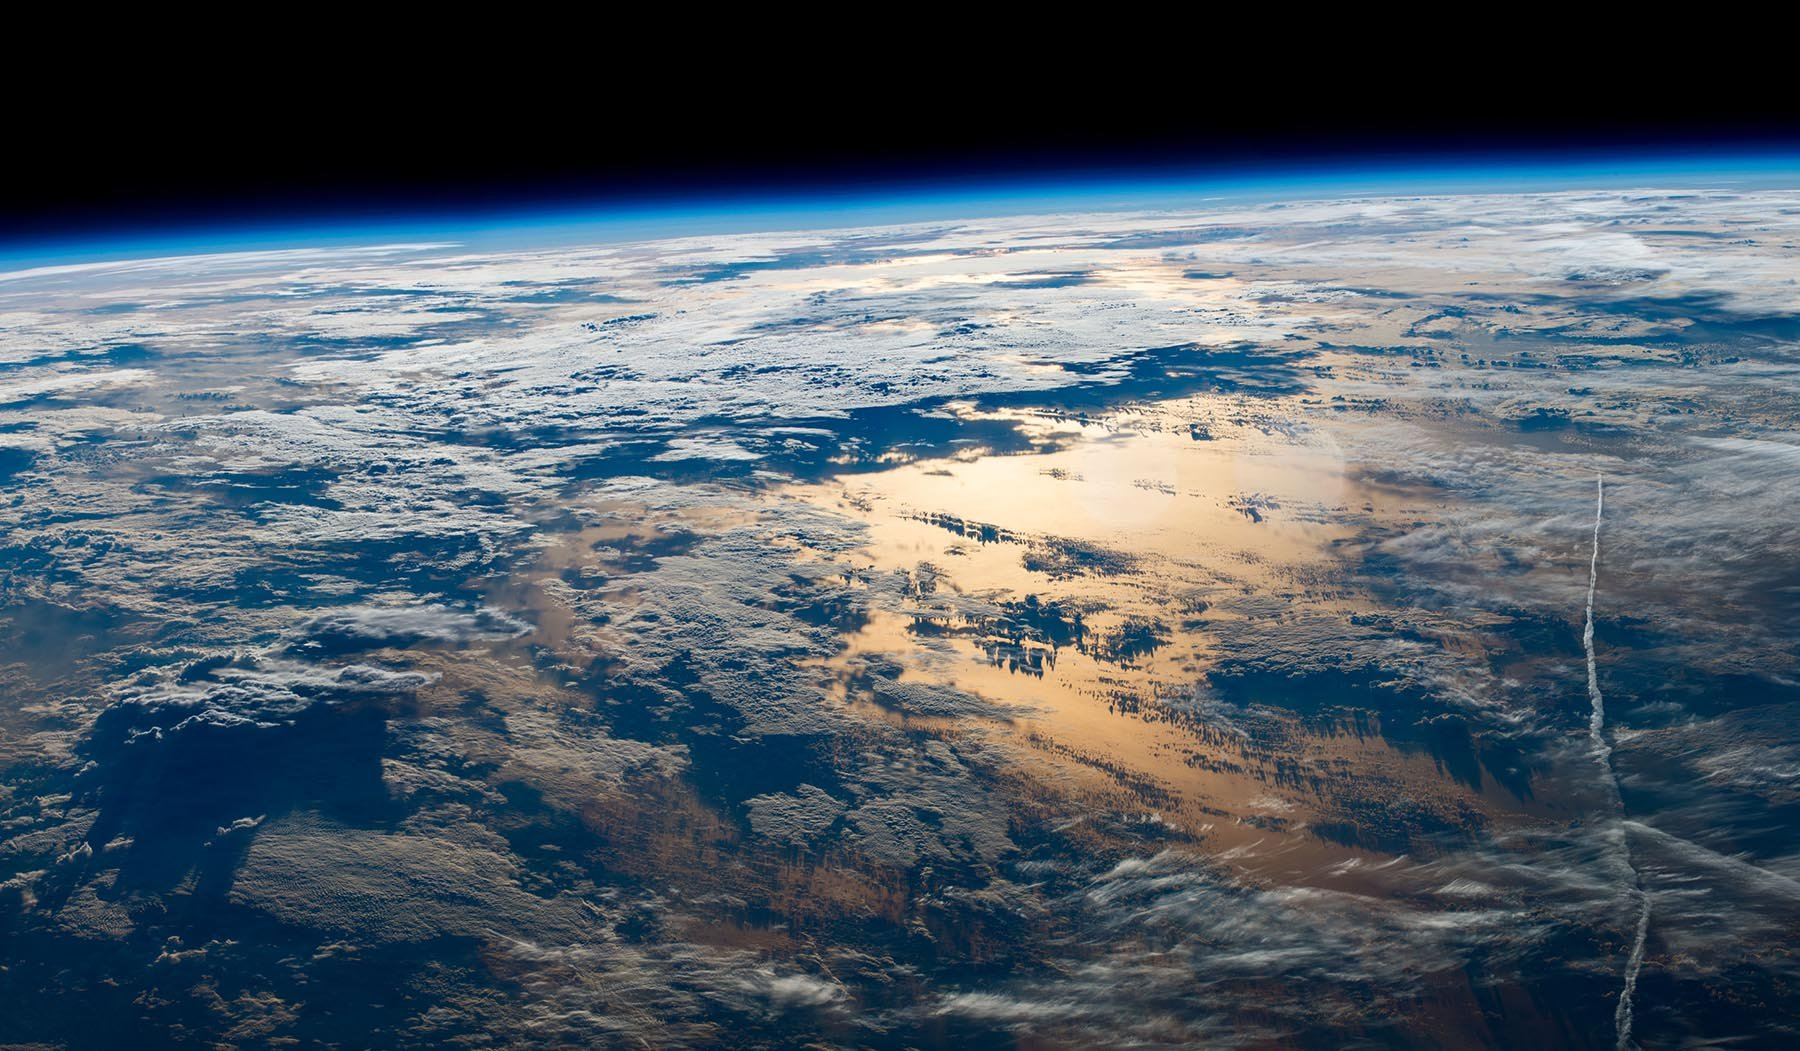 Image credit - Earth Science and Remote Sensing Unit, NASA Johnson Space Center